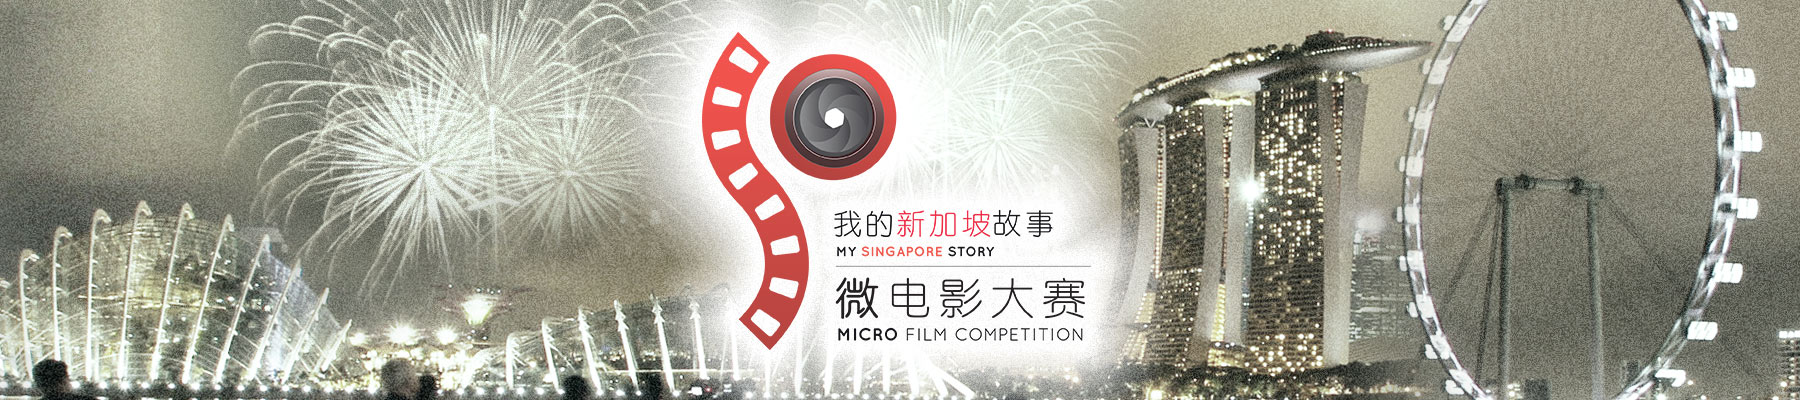 """我的新加坡故事""微电影比赛 'My Singapore Story' Micro Film Competition"